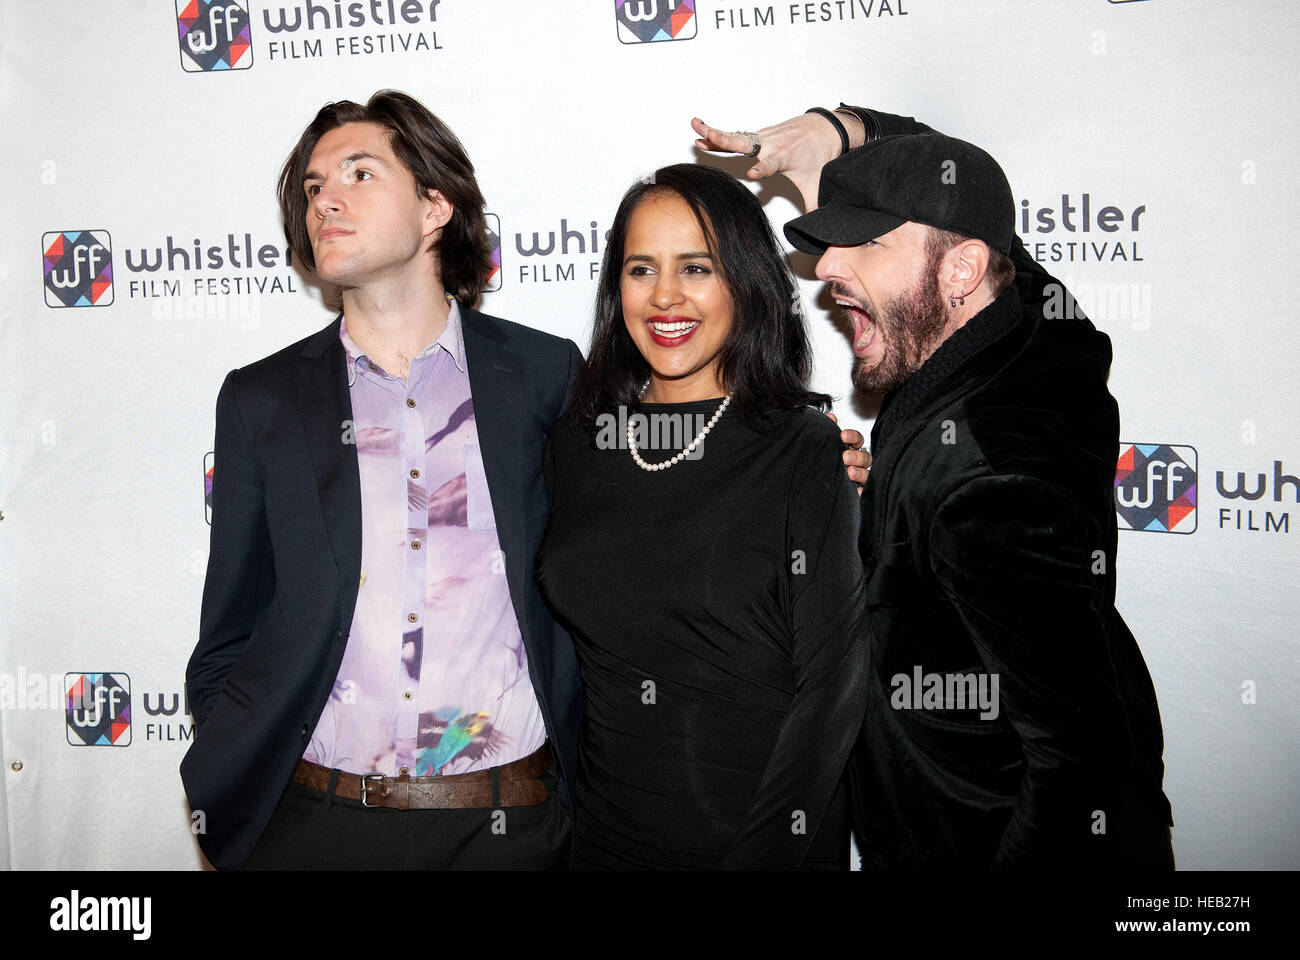 Actors Charlie Kerr, Agam Darshi, and Michael Ellund walk the red carpet on the opening night of the Whistler Film - Stock Image